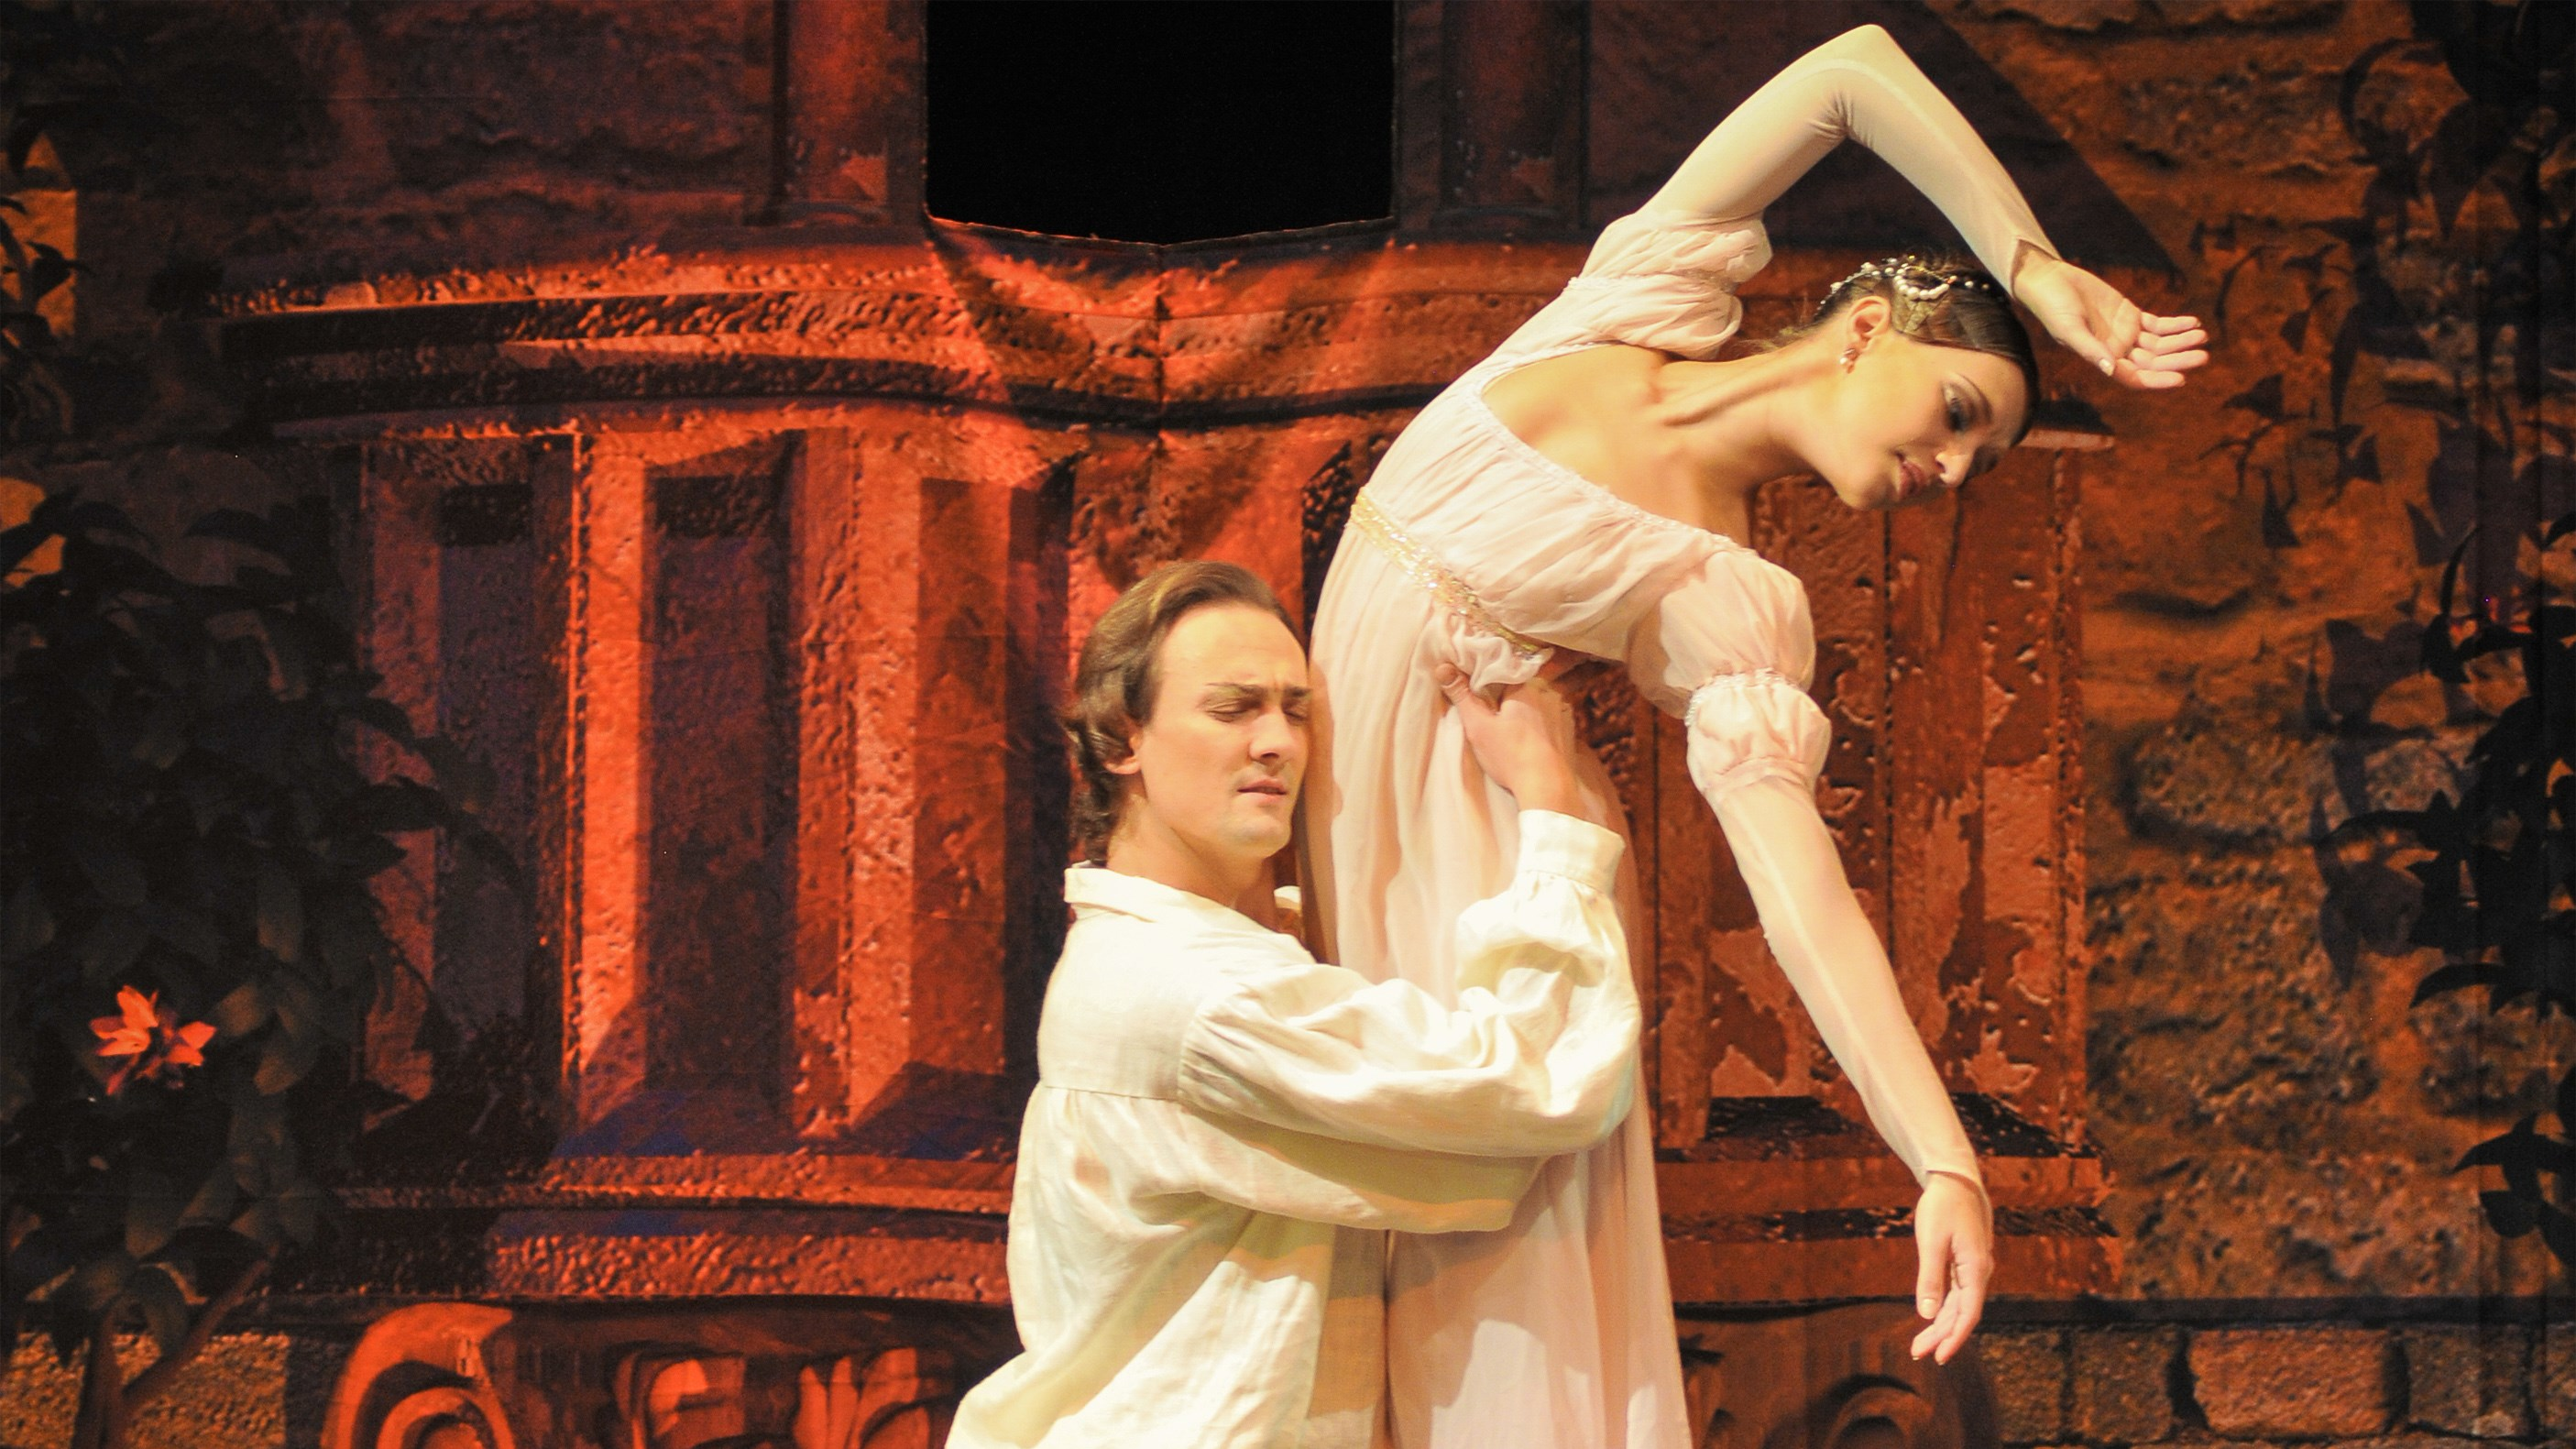 The Royal Moscow Ballet - Romeo and Juliet - (fotograaf onbekend) - campagnebeeld liggend.jpg